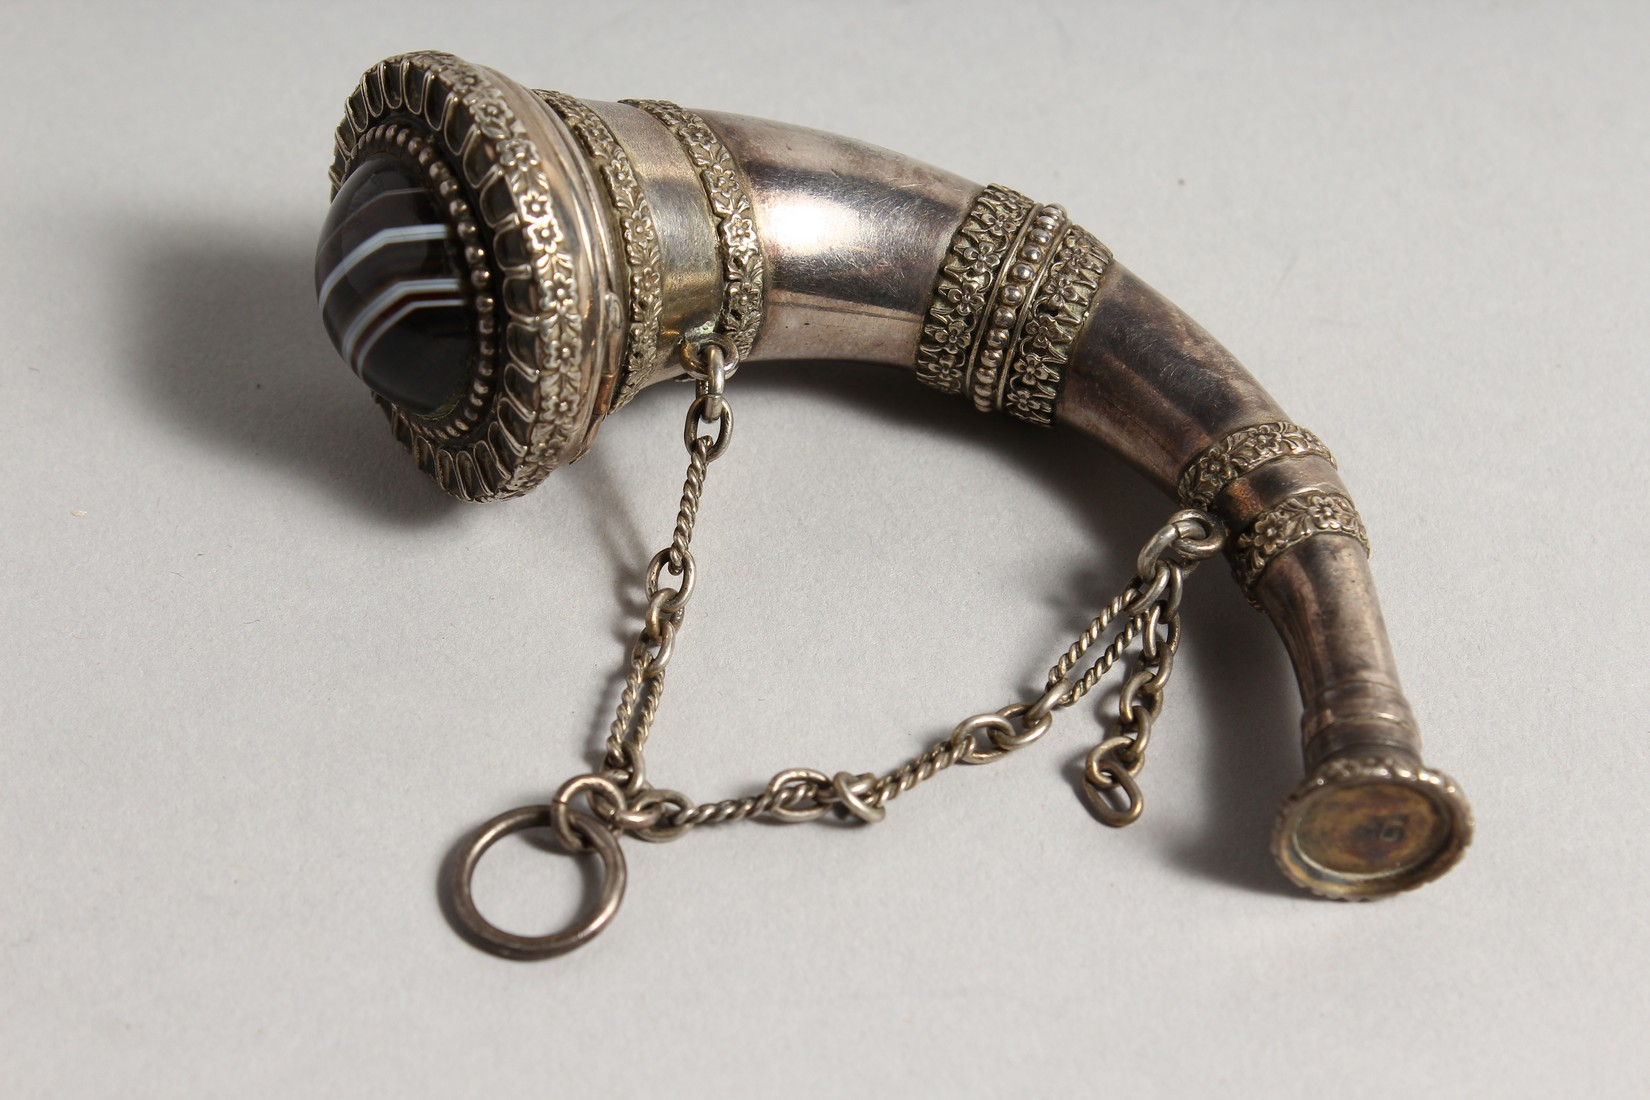 A VERY GOOD VICTORIAN SAMPSON MORDEN SILVER HORN VINIGRETTE with agate stone. 4ins long, London - Image 5 of 8